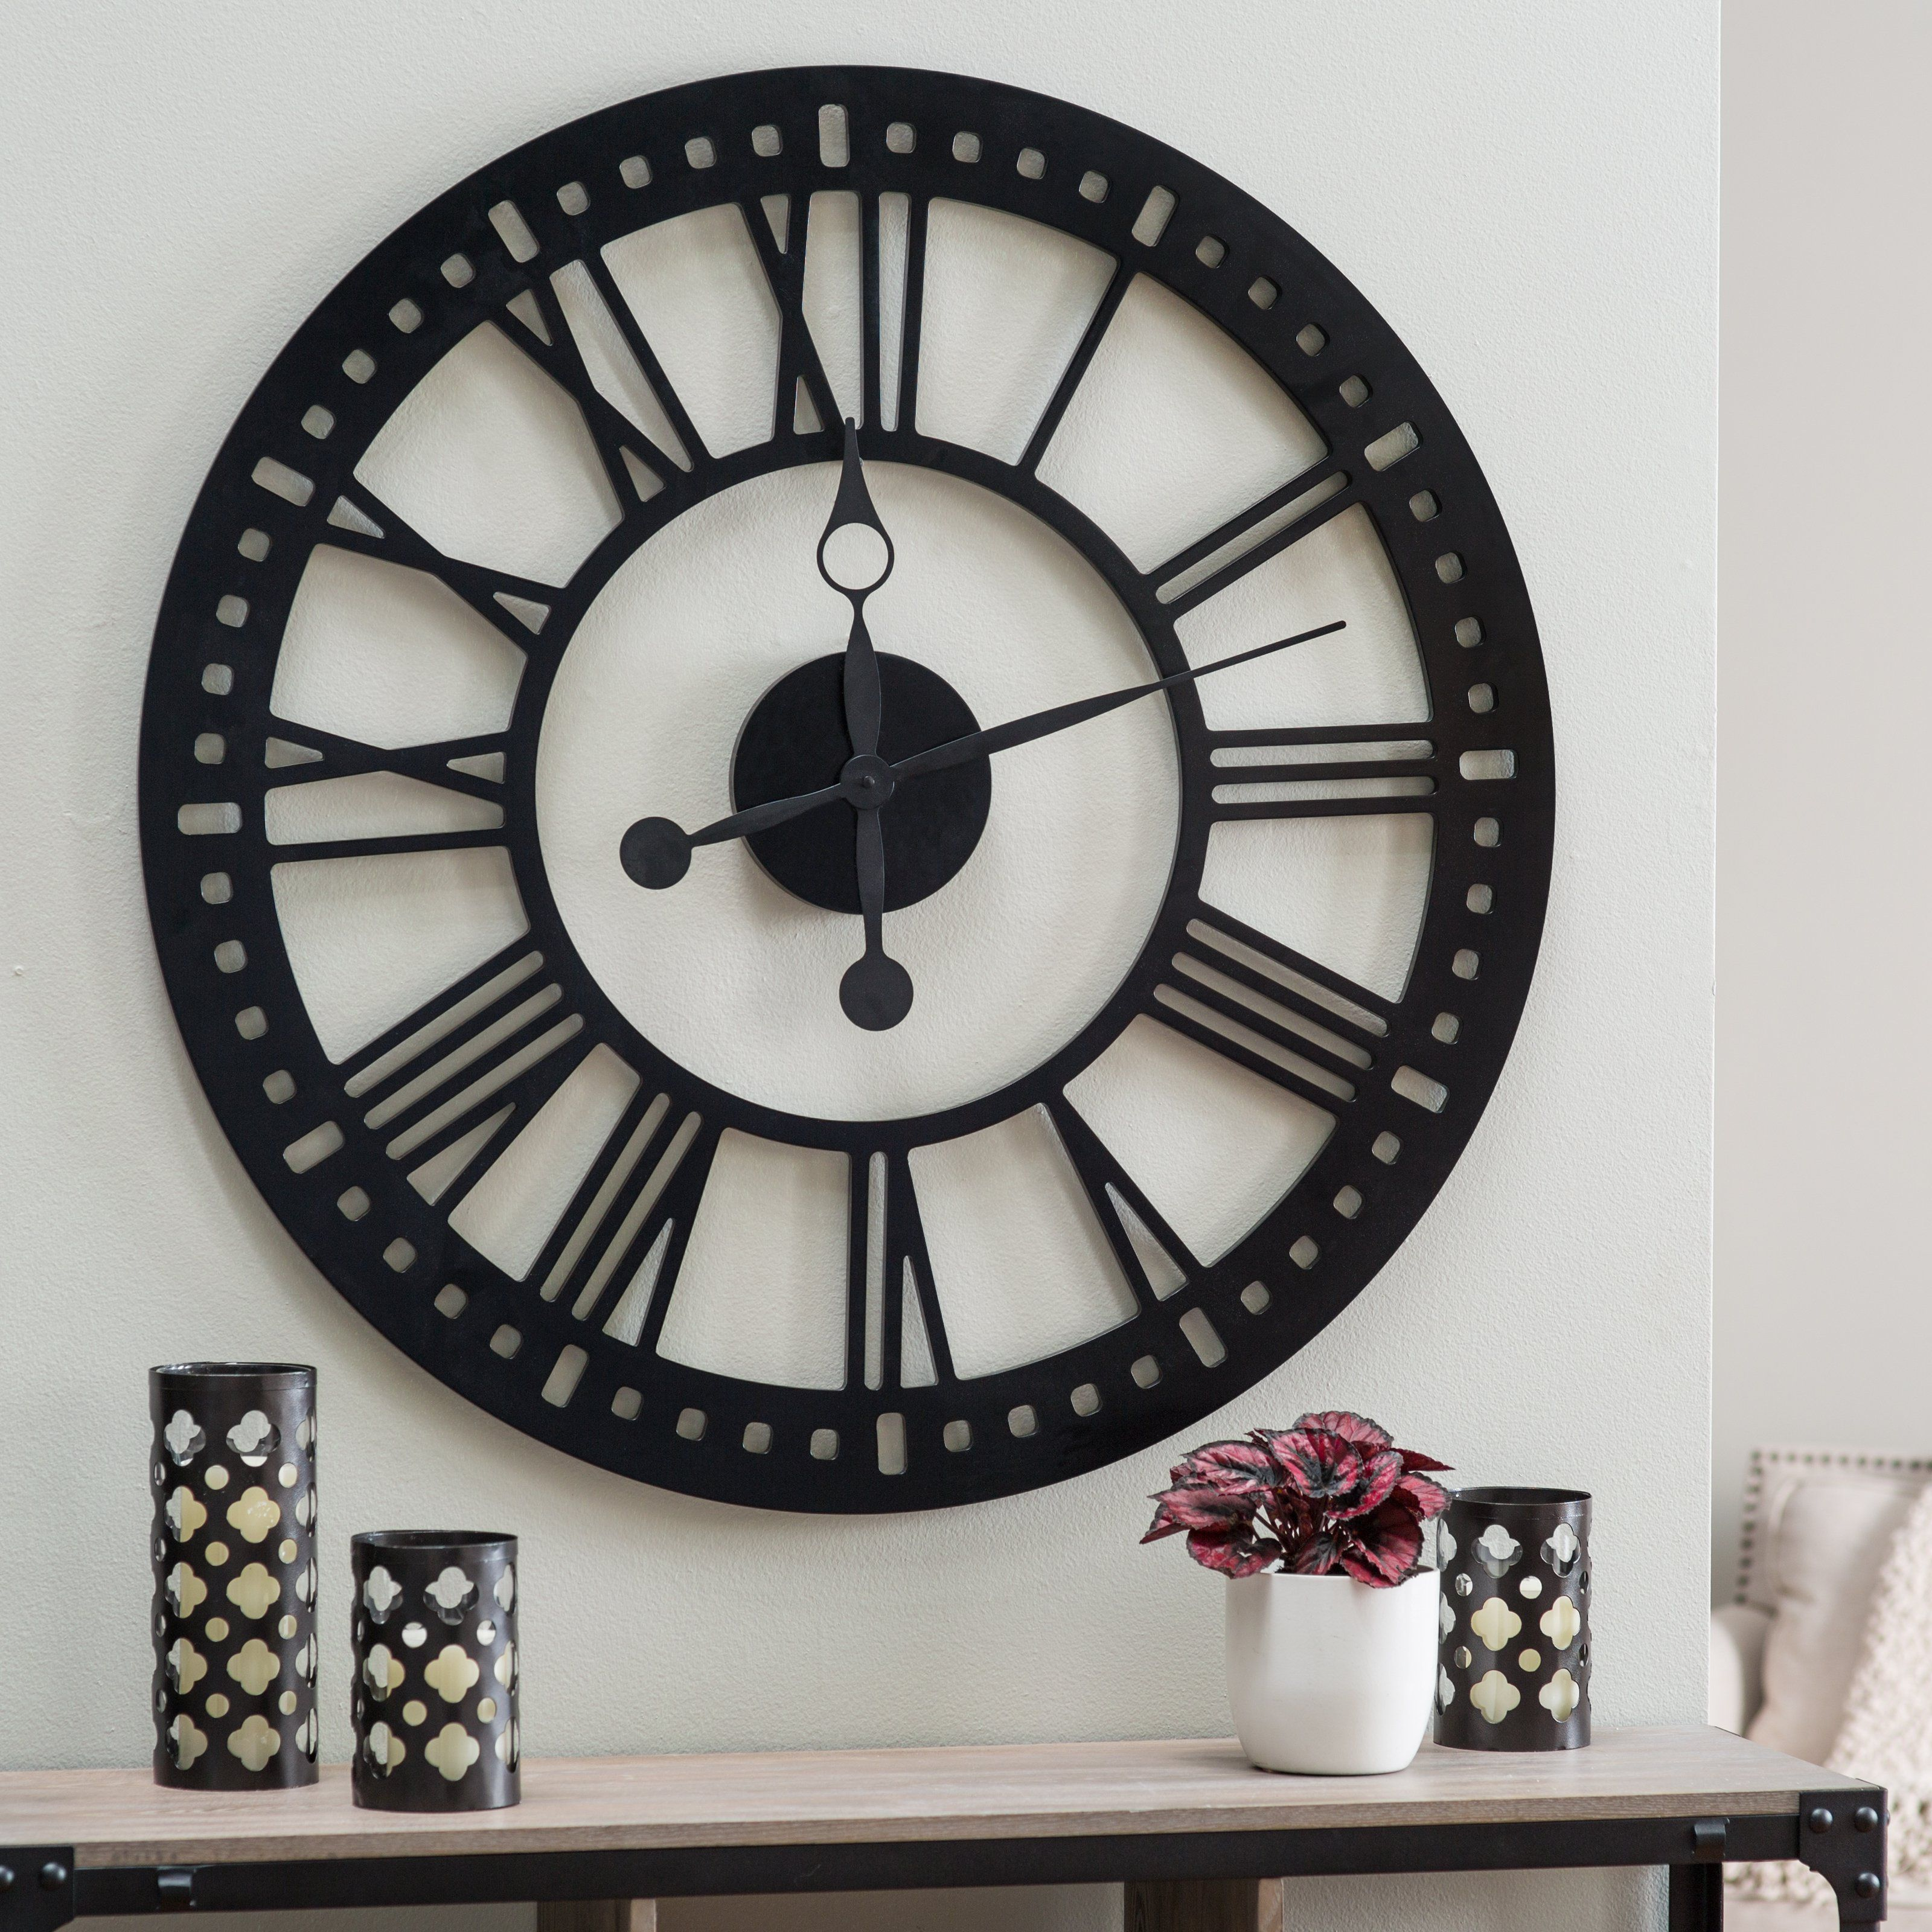 hawthorne oversized tower inch wall clock we clock and clock hawthorne oversized tower 38 inch wall clock 239 hayneedle